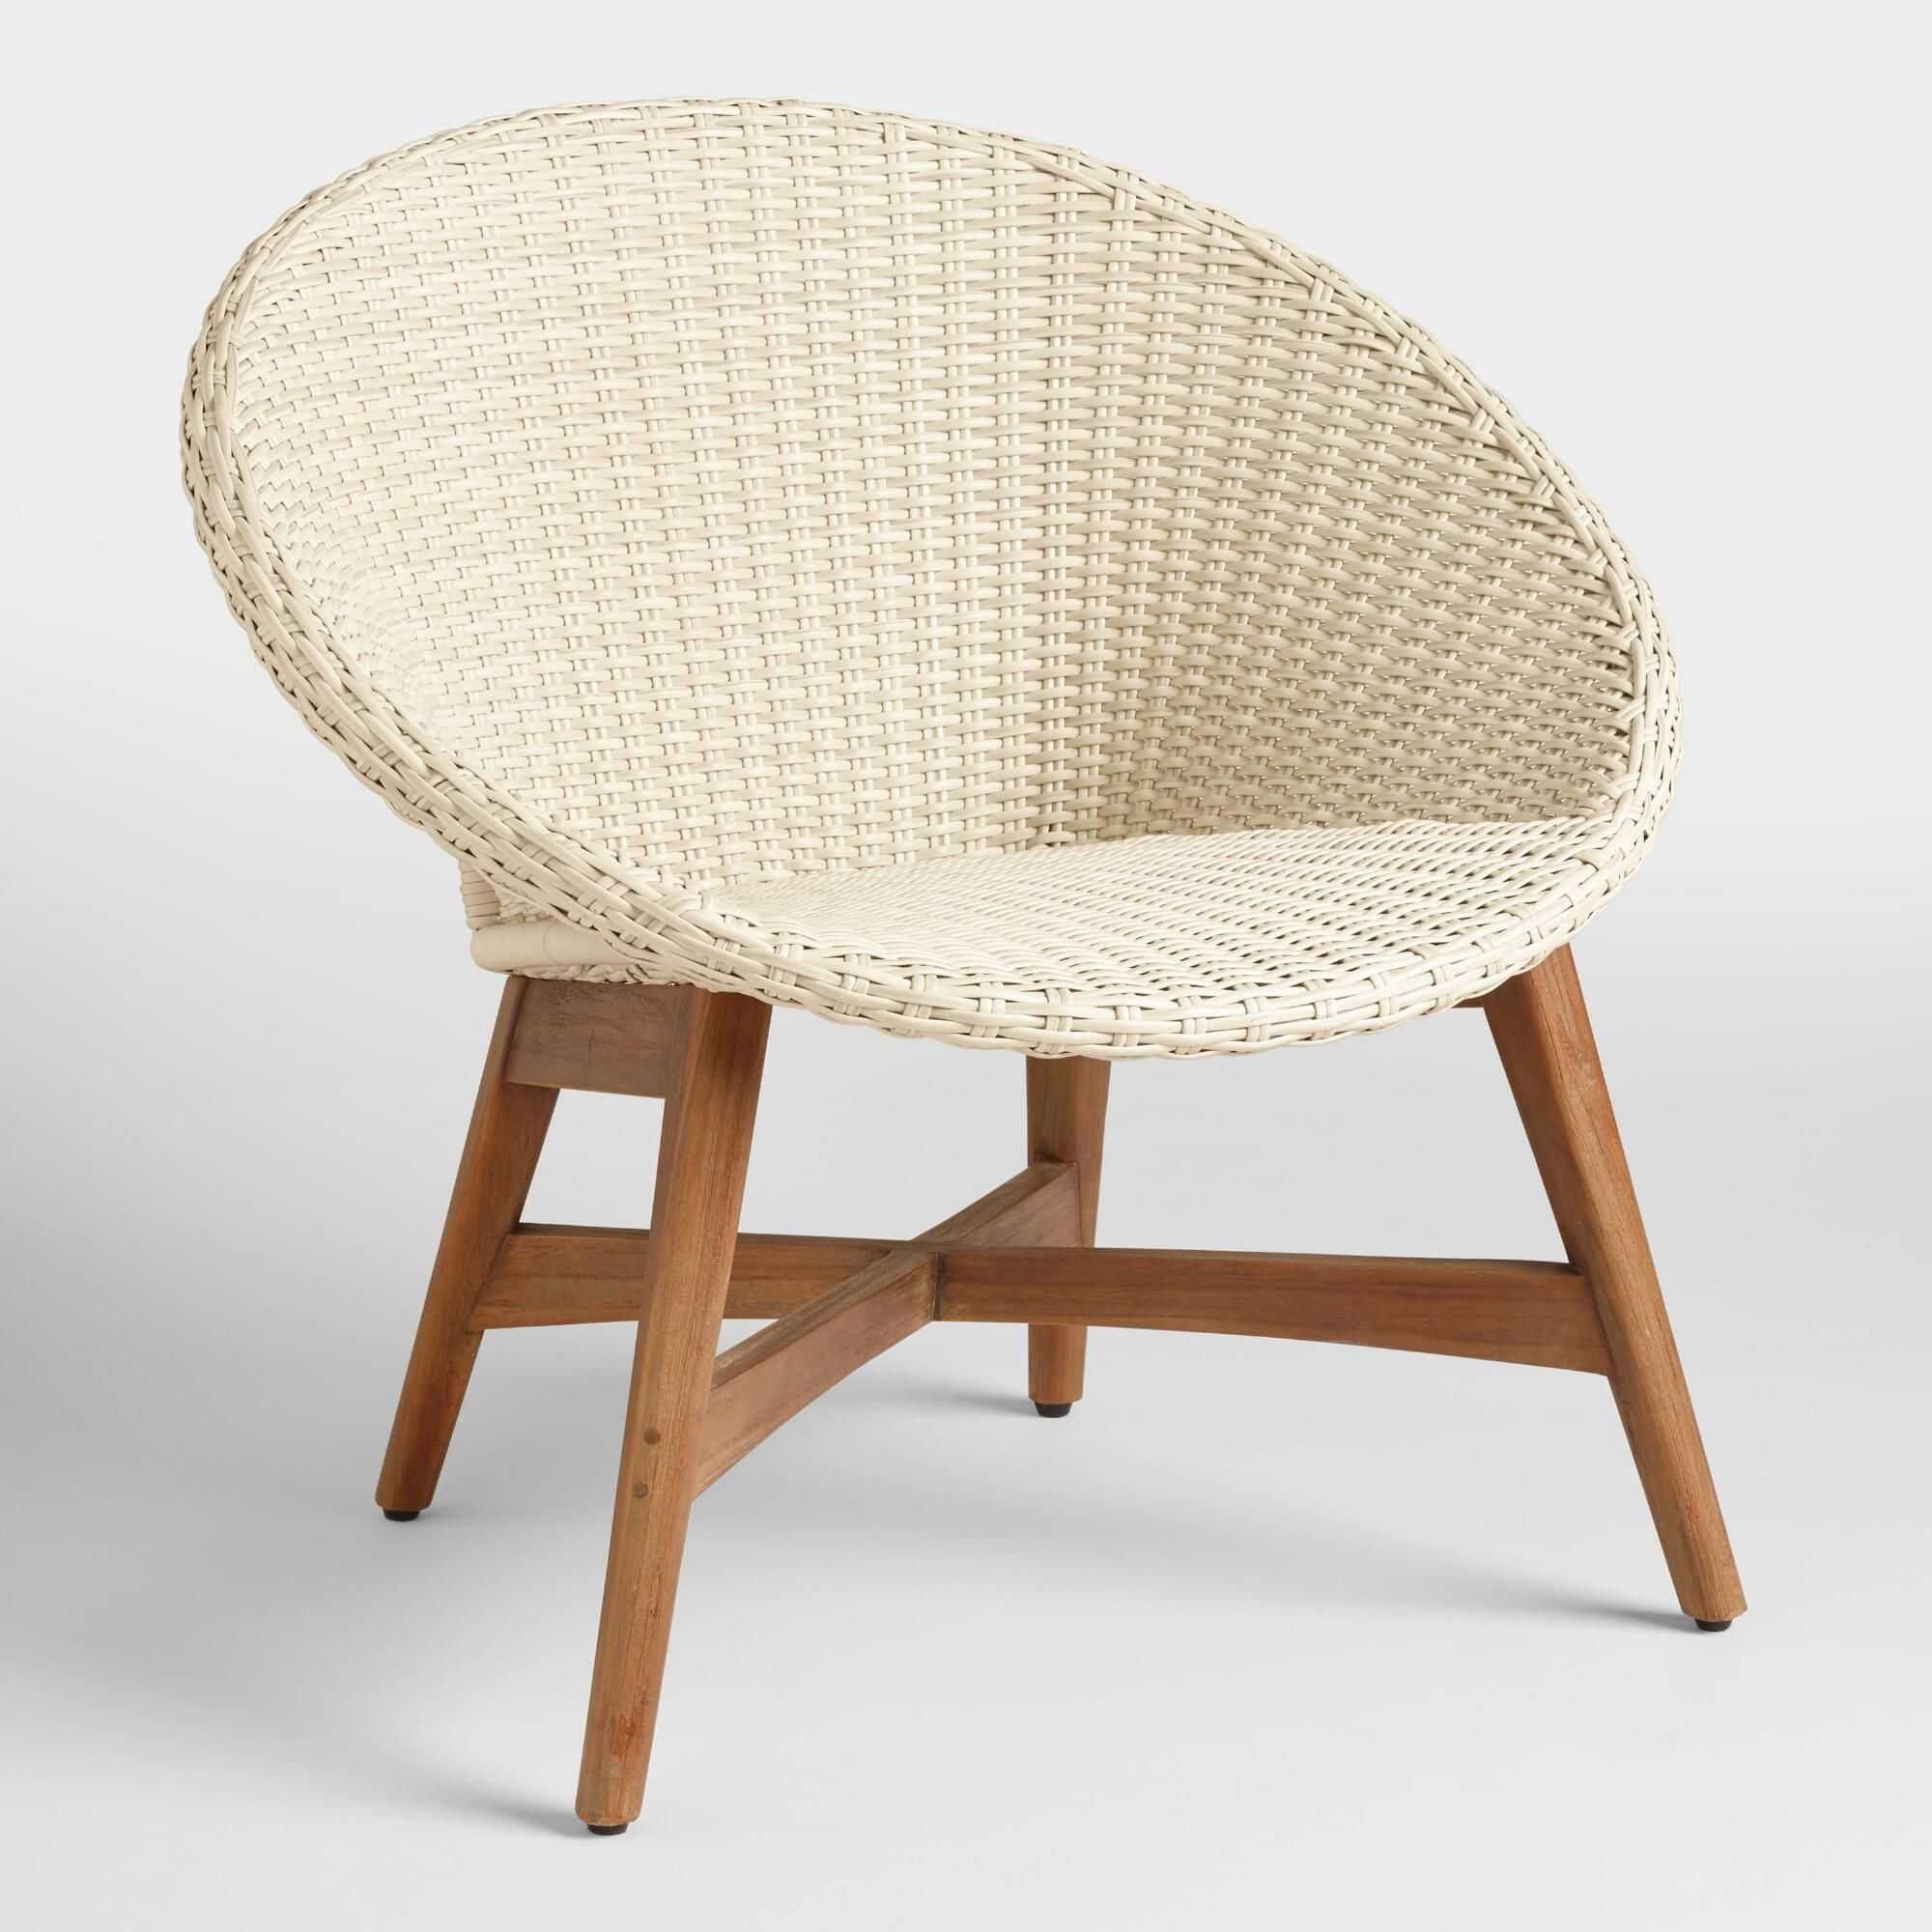 Round All Weather Wicker Vernazza Outdoor Patio Chairs Set